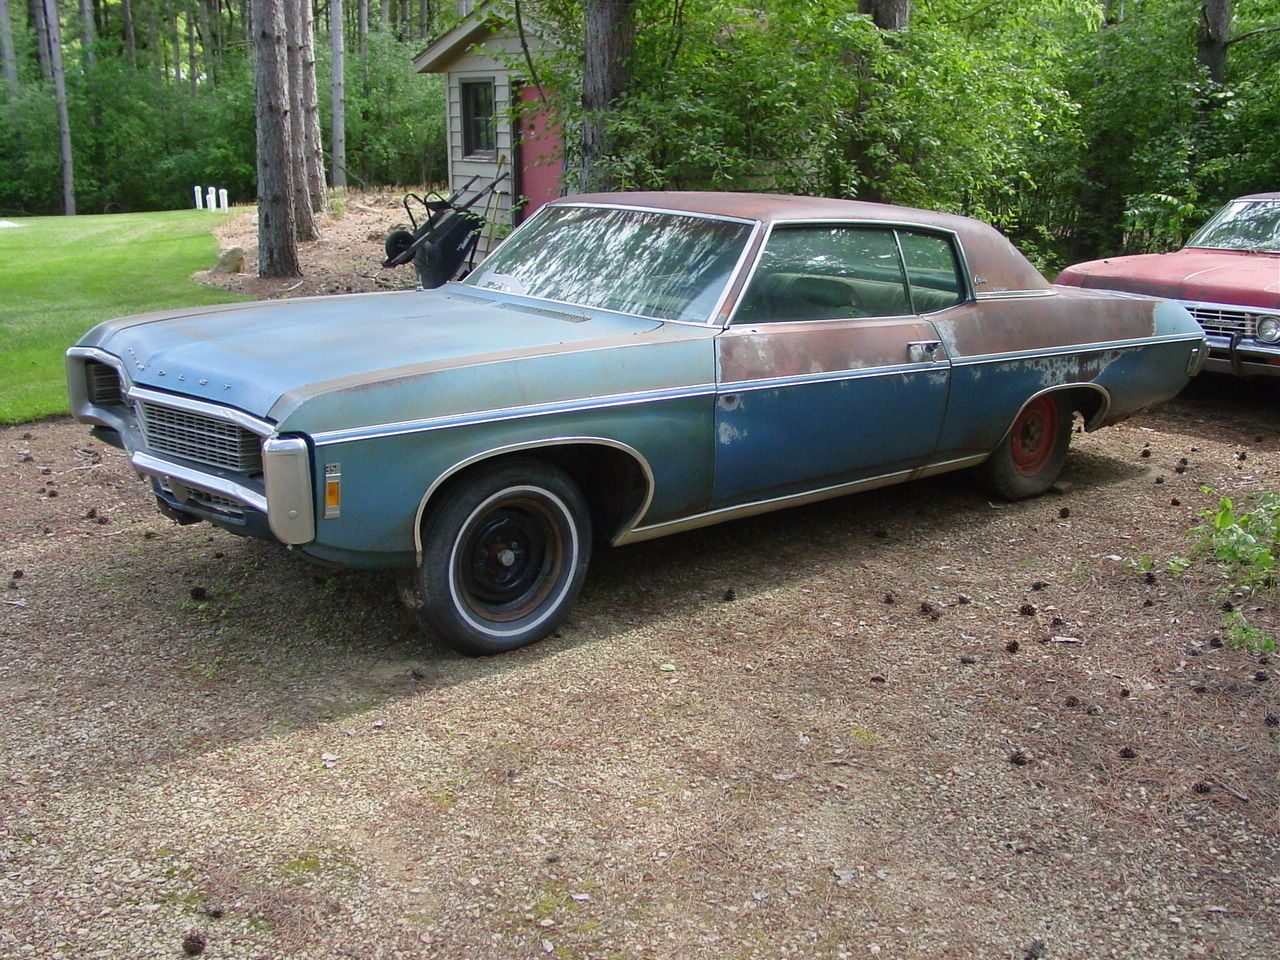 Coupe 1951 chevy coupe parts : eBay: 1969 Chevrolet Caprice 1969 Chevy Caprice 2dr coupe project ...